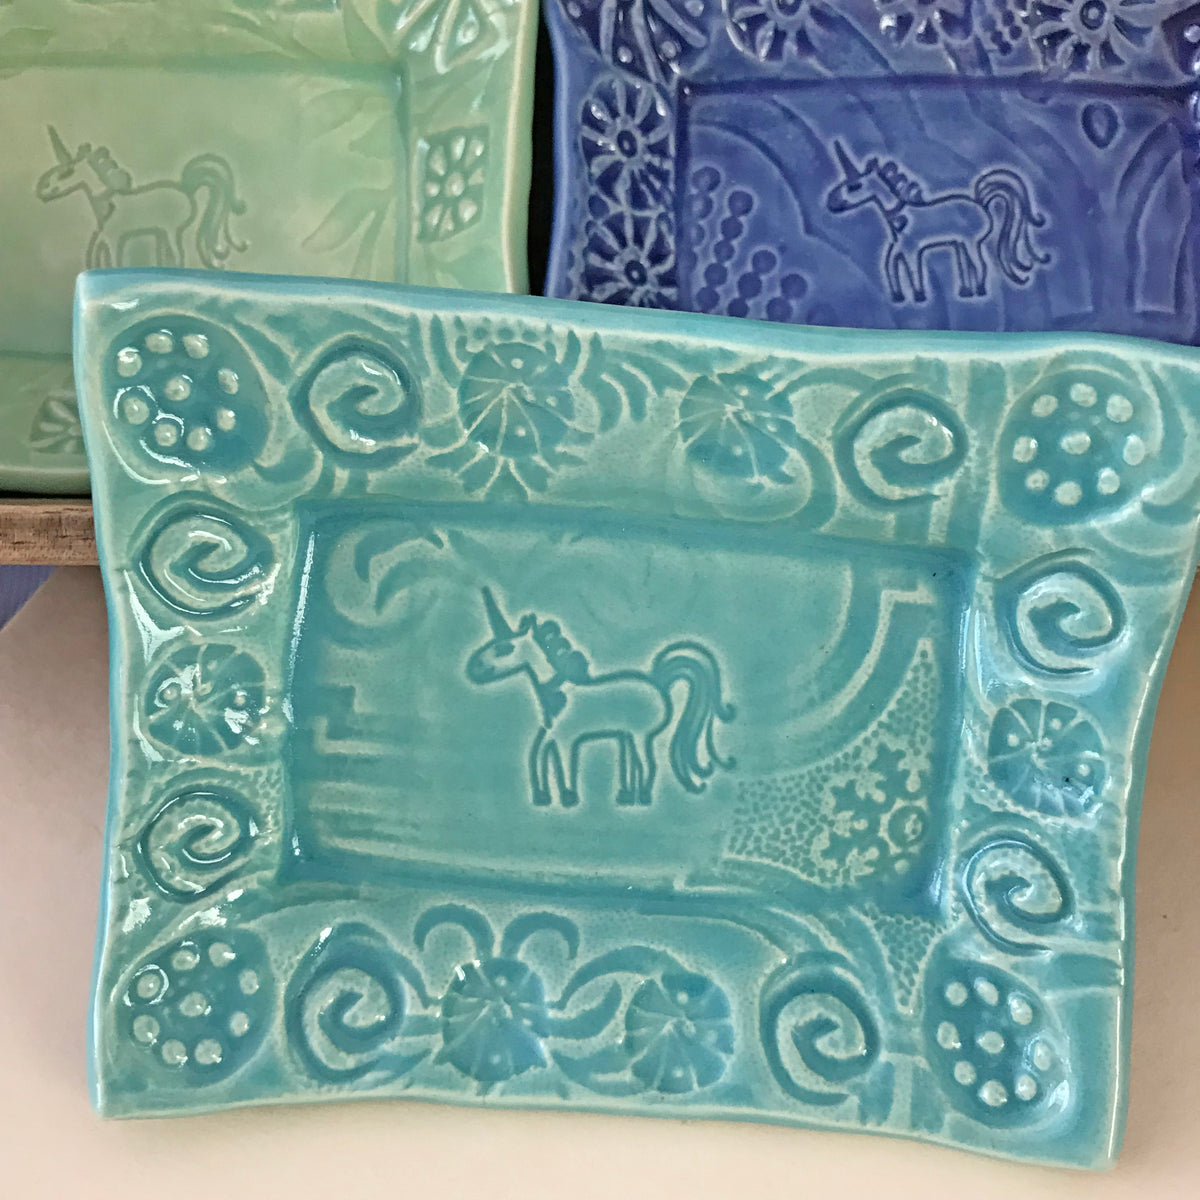 Unicorn Dishes designed for collectors.  Inspired by unicorn images from ancient times, including roman coins, Christian symbolism and manuscripts.  Handmade ceramic.